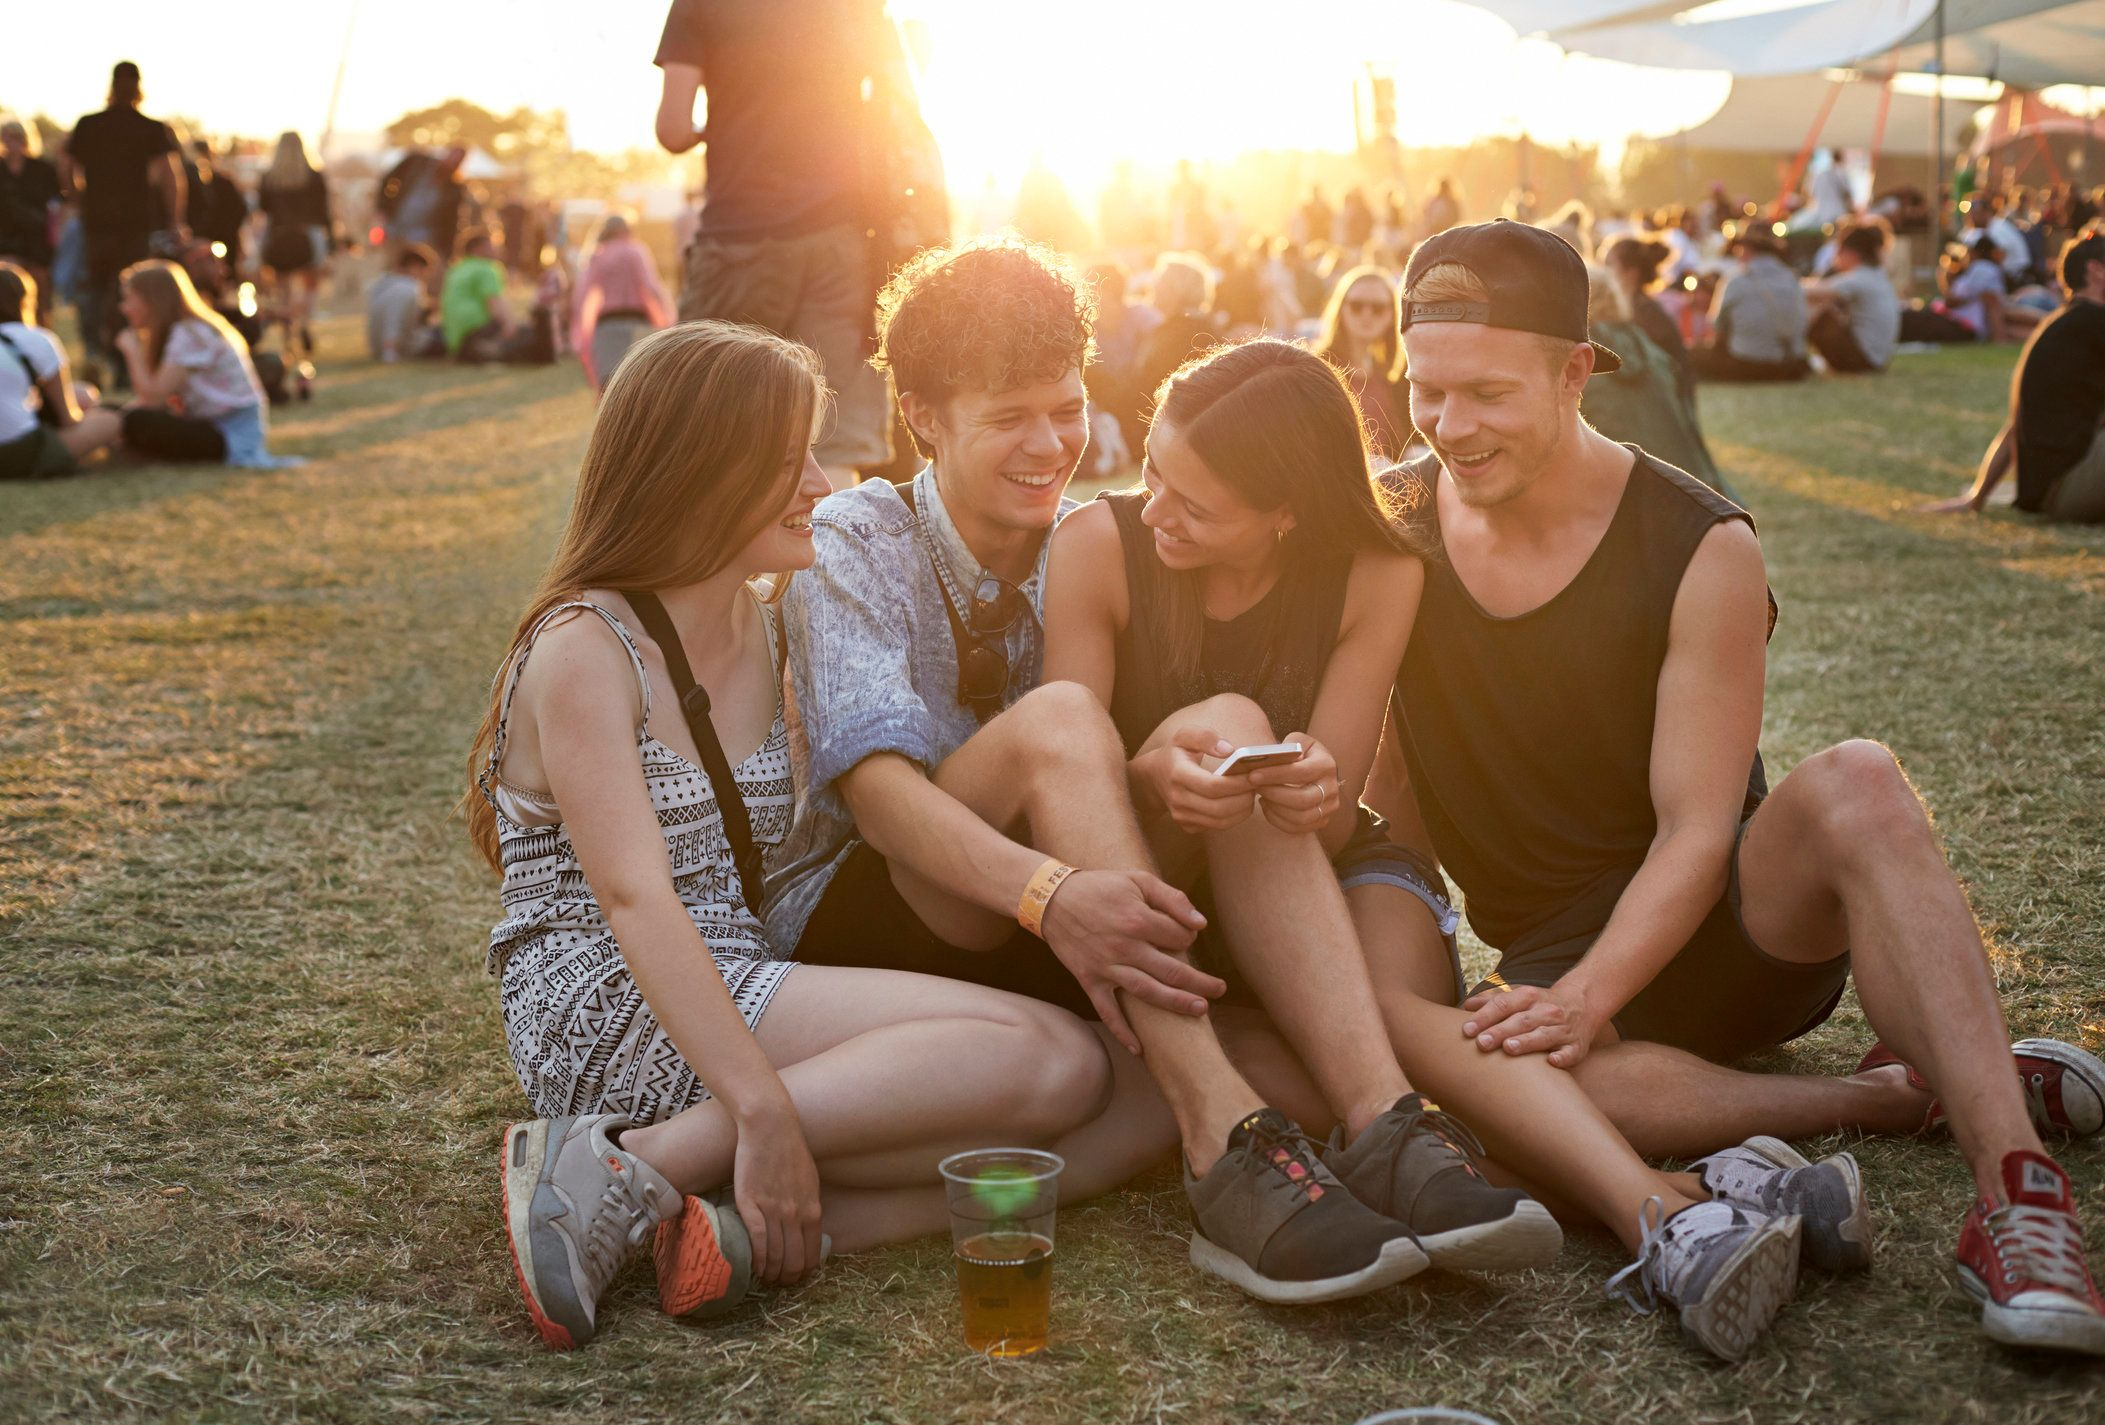 Dehydration and drug use aremajor problems at music festivals.